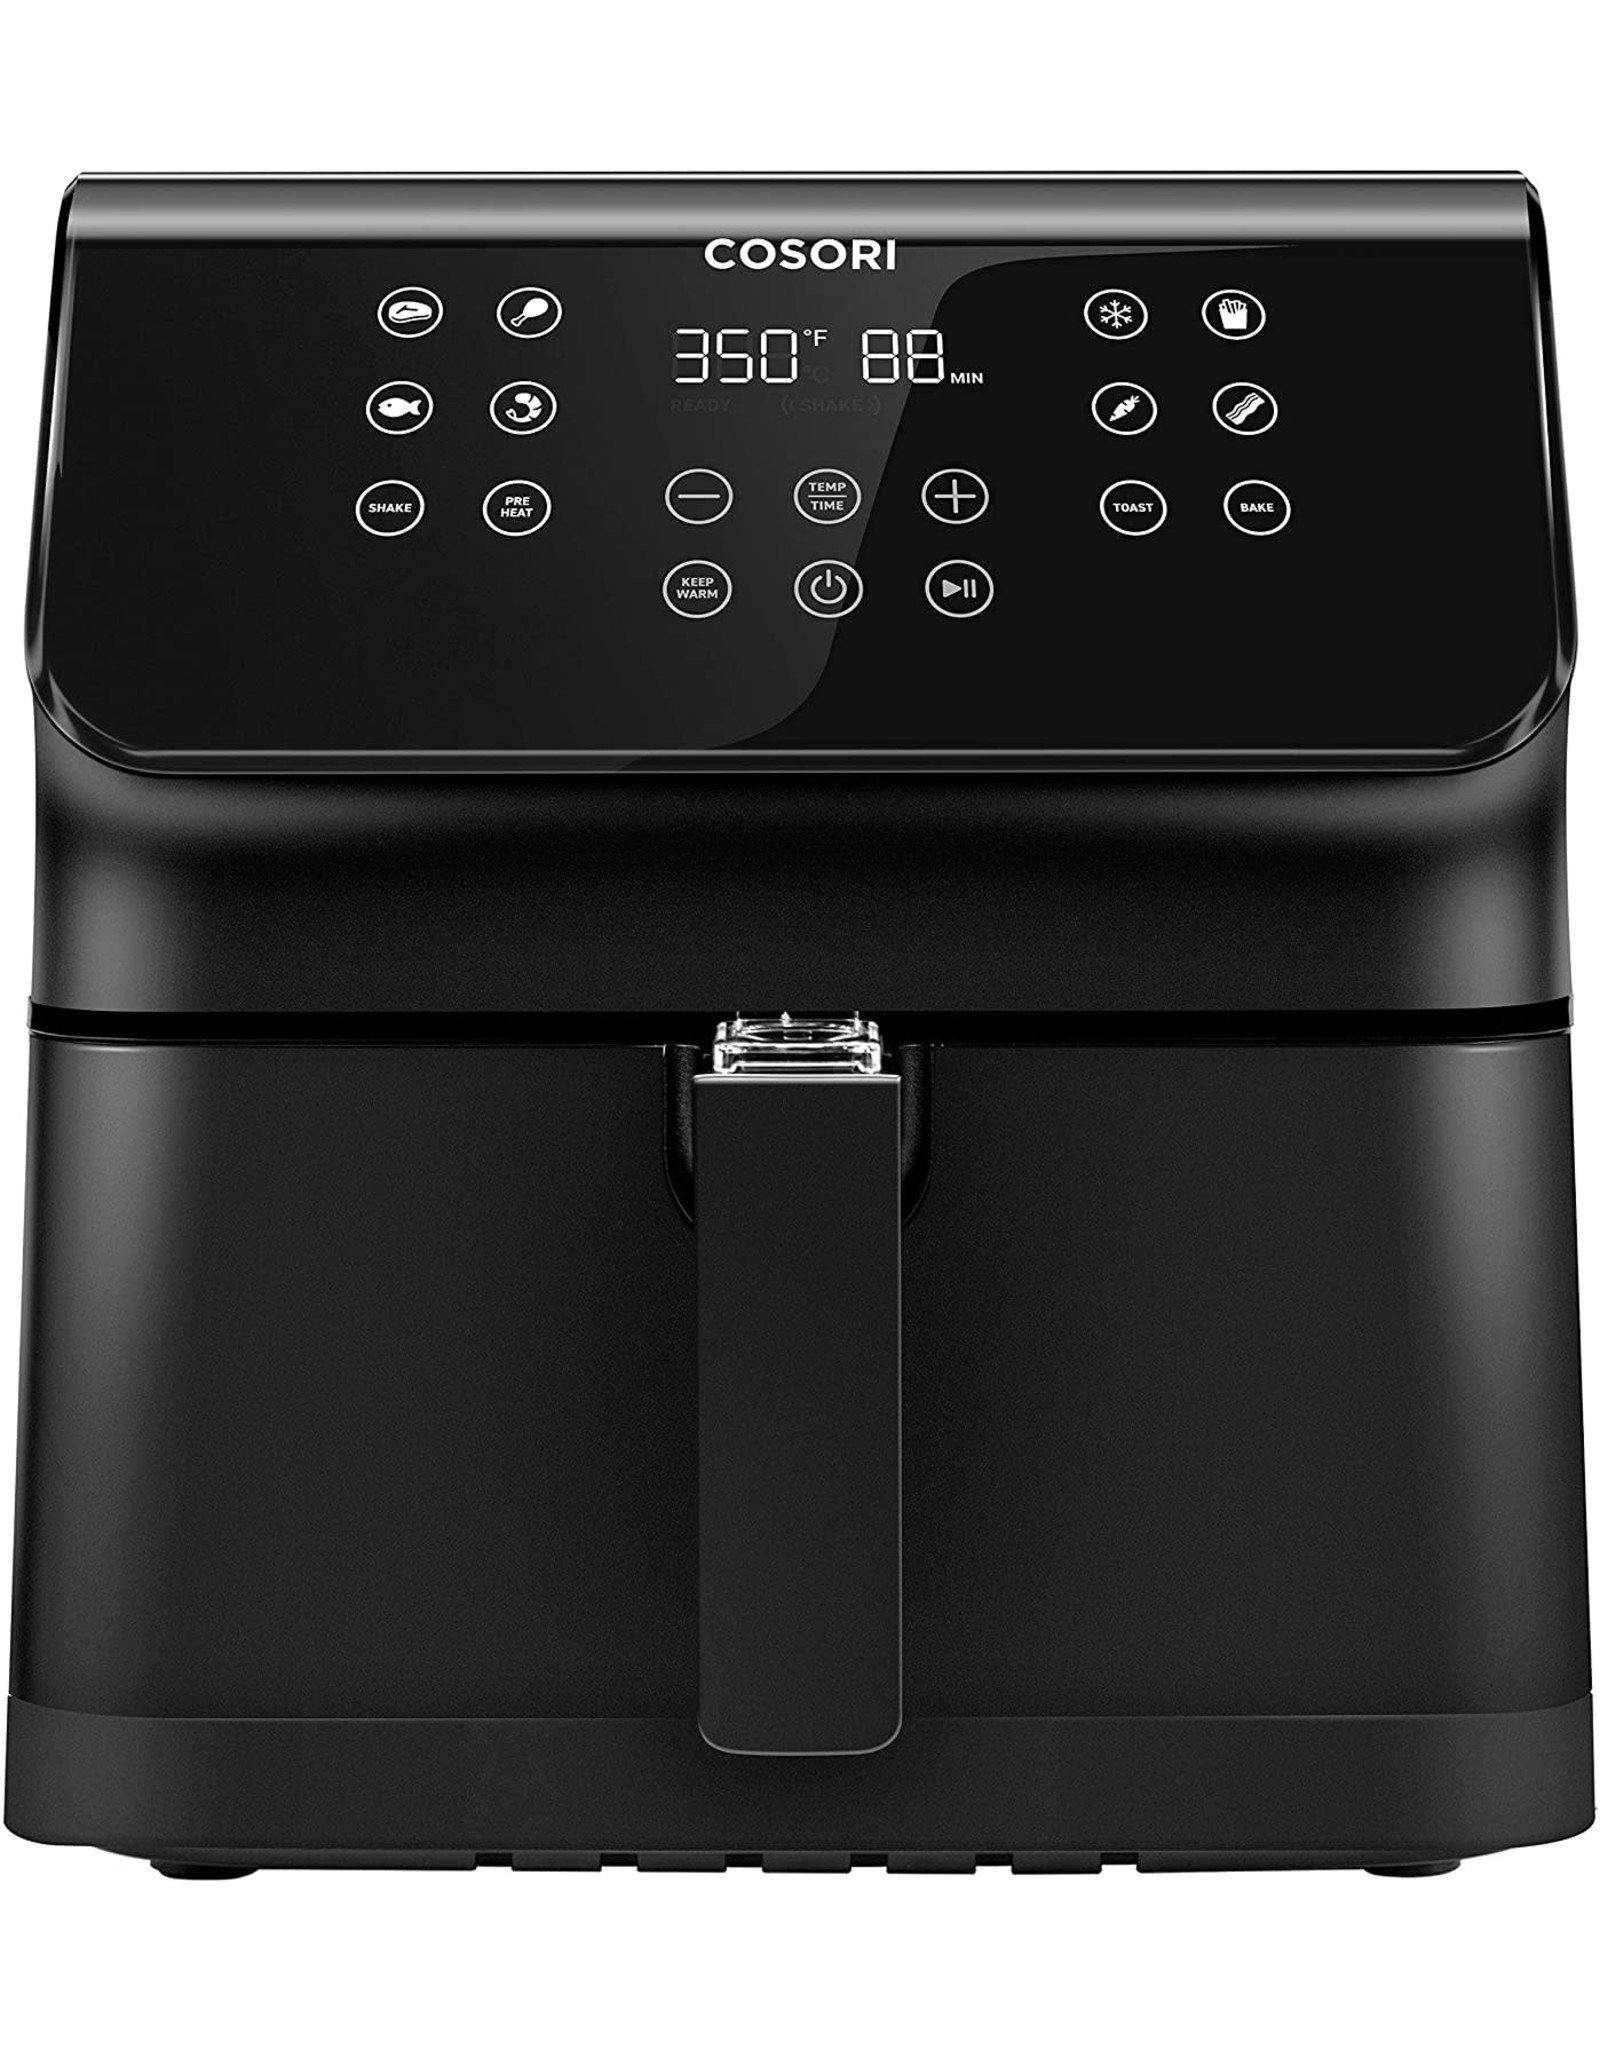 COSORI COSORI Air Fryer(100 Recipes), 12-in-1 Large XL Air Fryer Oven with Upgrade Customizable 10 Presets, Preheat, Shake Reminder, Digital Hot Oilless Cooker, 5.8QT, Black